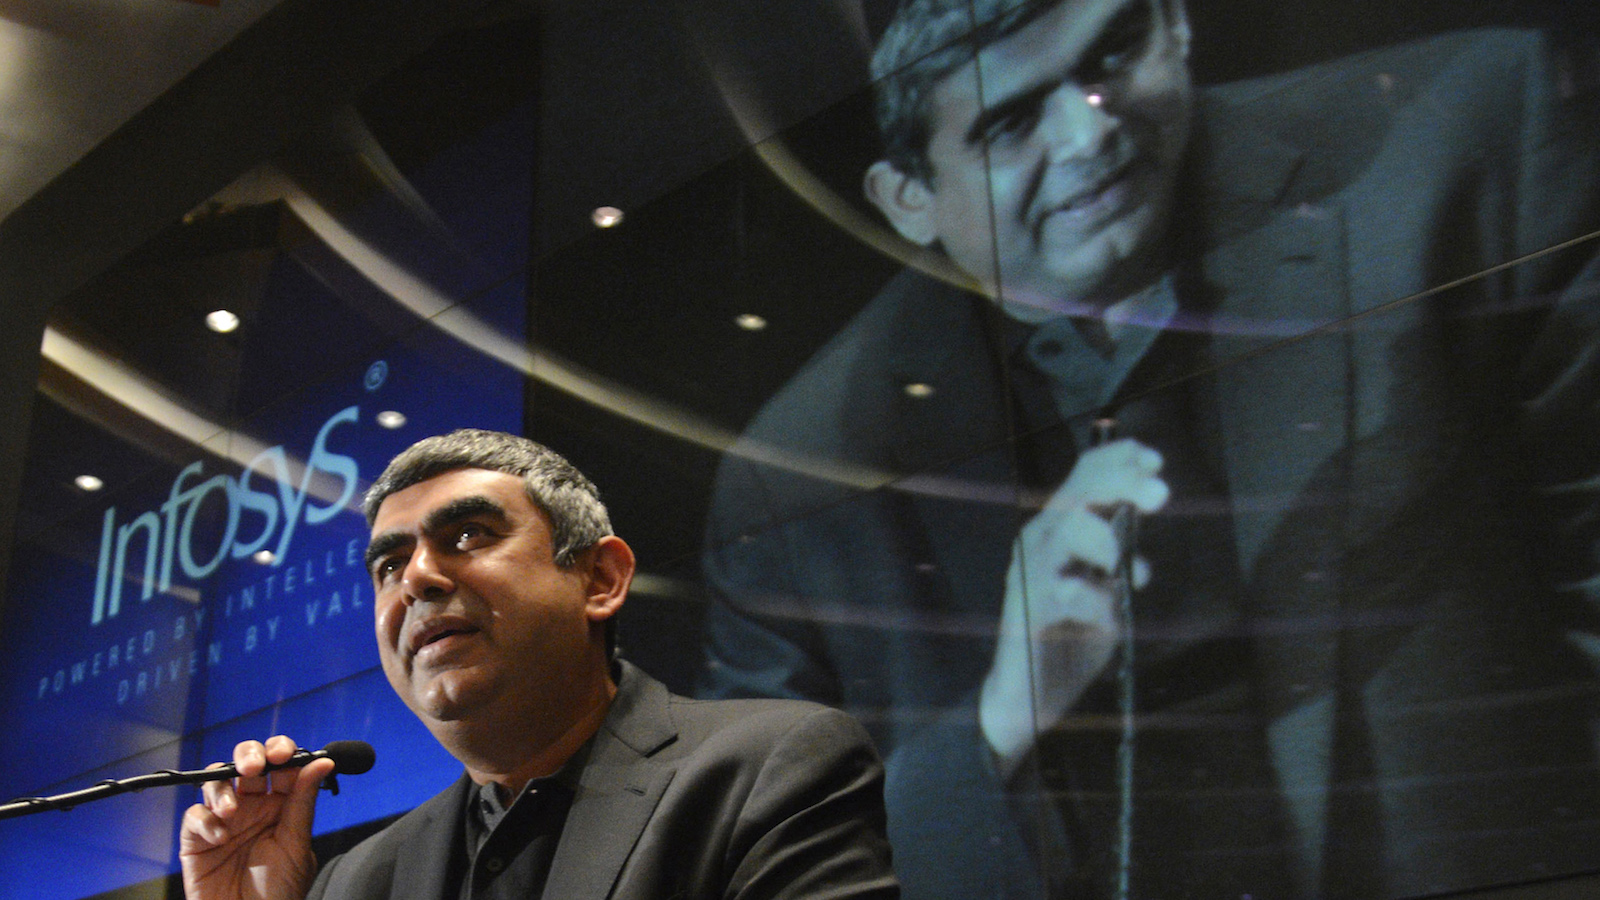 Newly appointed Infosys Chief Executive Officer Vishal Sikka speaks during a news conference at the company's headquarters in the southern Indian city of Bangalore June 12, 2014. Infosys Ltd, India's second-largest IT services exporter, has for the first time picked an outsider as chief executive officer, as it seeks to boost sales of high-margin services like cloud computing and stem a staff exodus. Sikka, a former member of executive board at German software company SAP AG, has the technical savvy to herald what analysts expect will be a strategy overhaul at Infosys, which, like its competitors Tata Consultancy Services Ltd and Wipro Ltd, has relied on labour-intensive, low-margin contracts from Western clients.